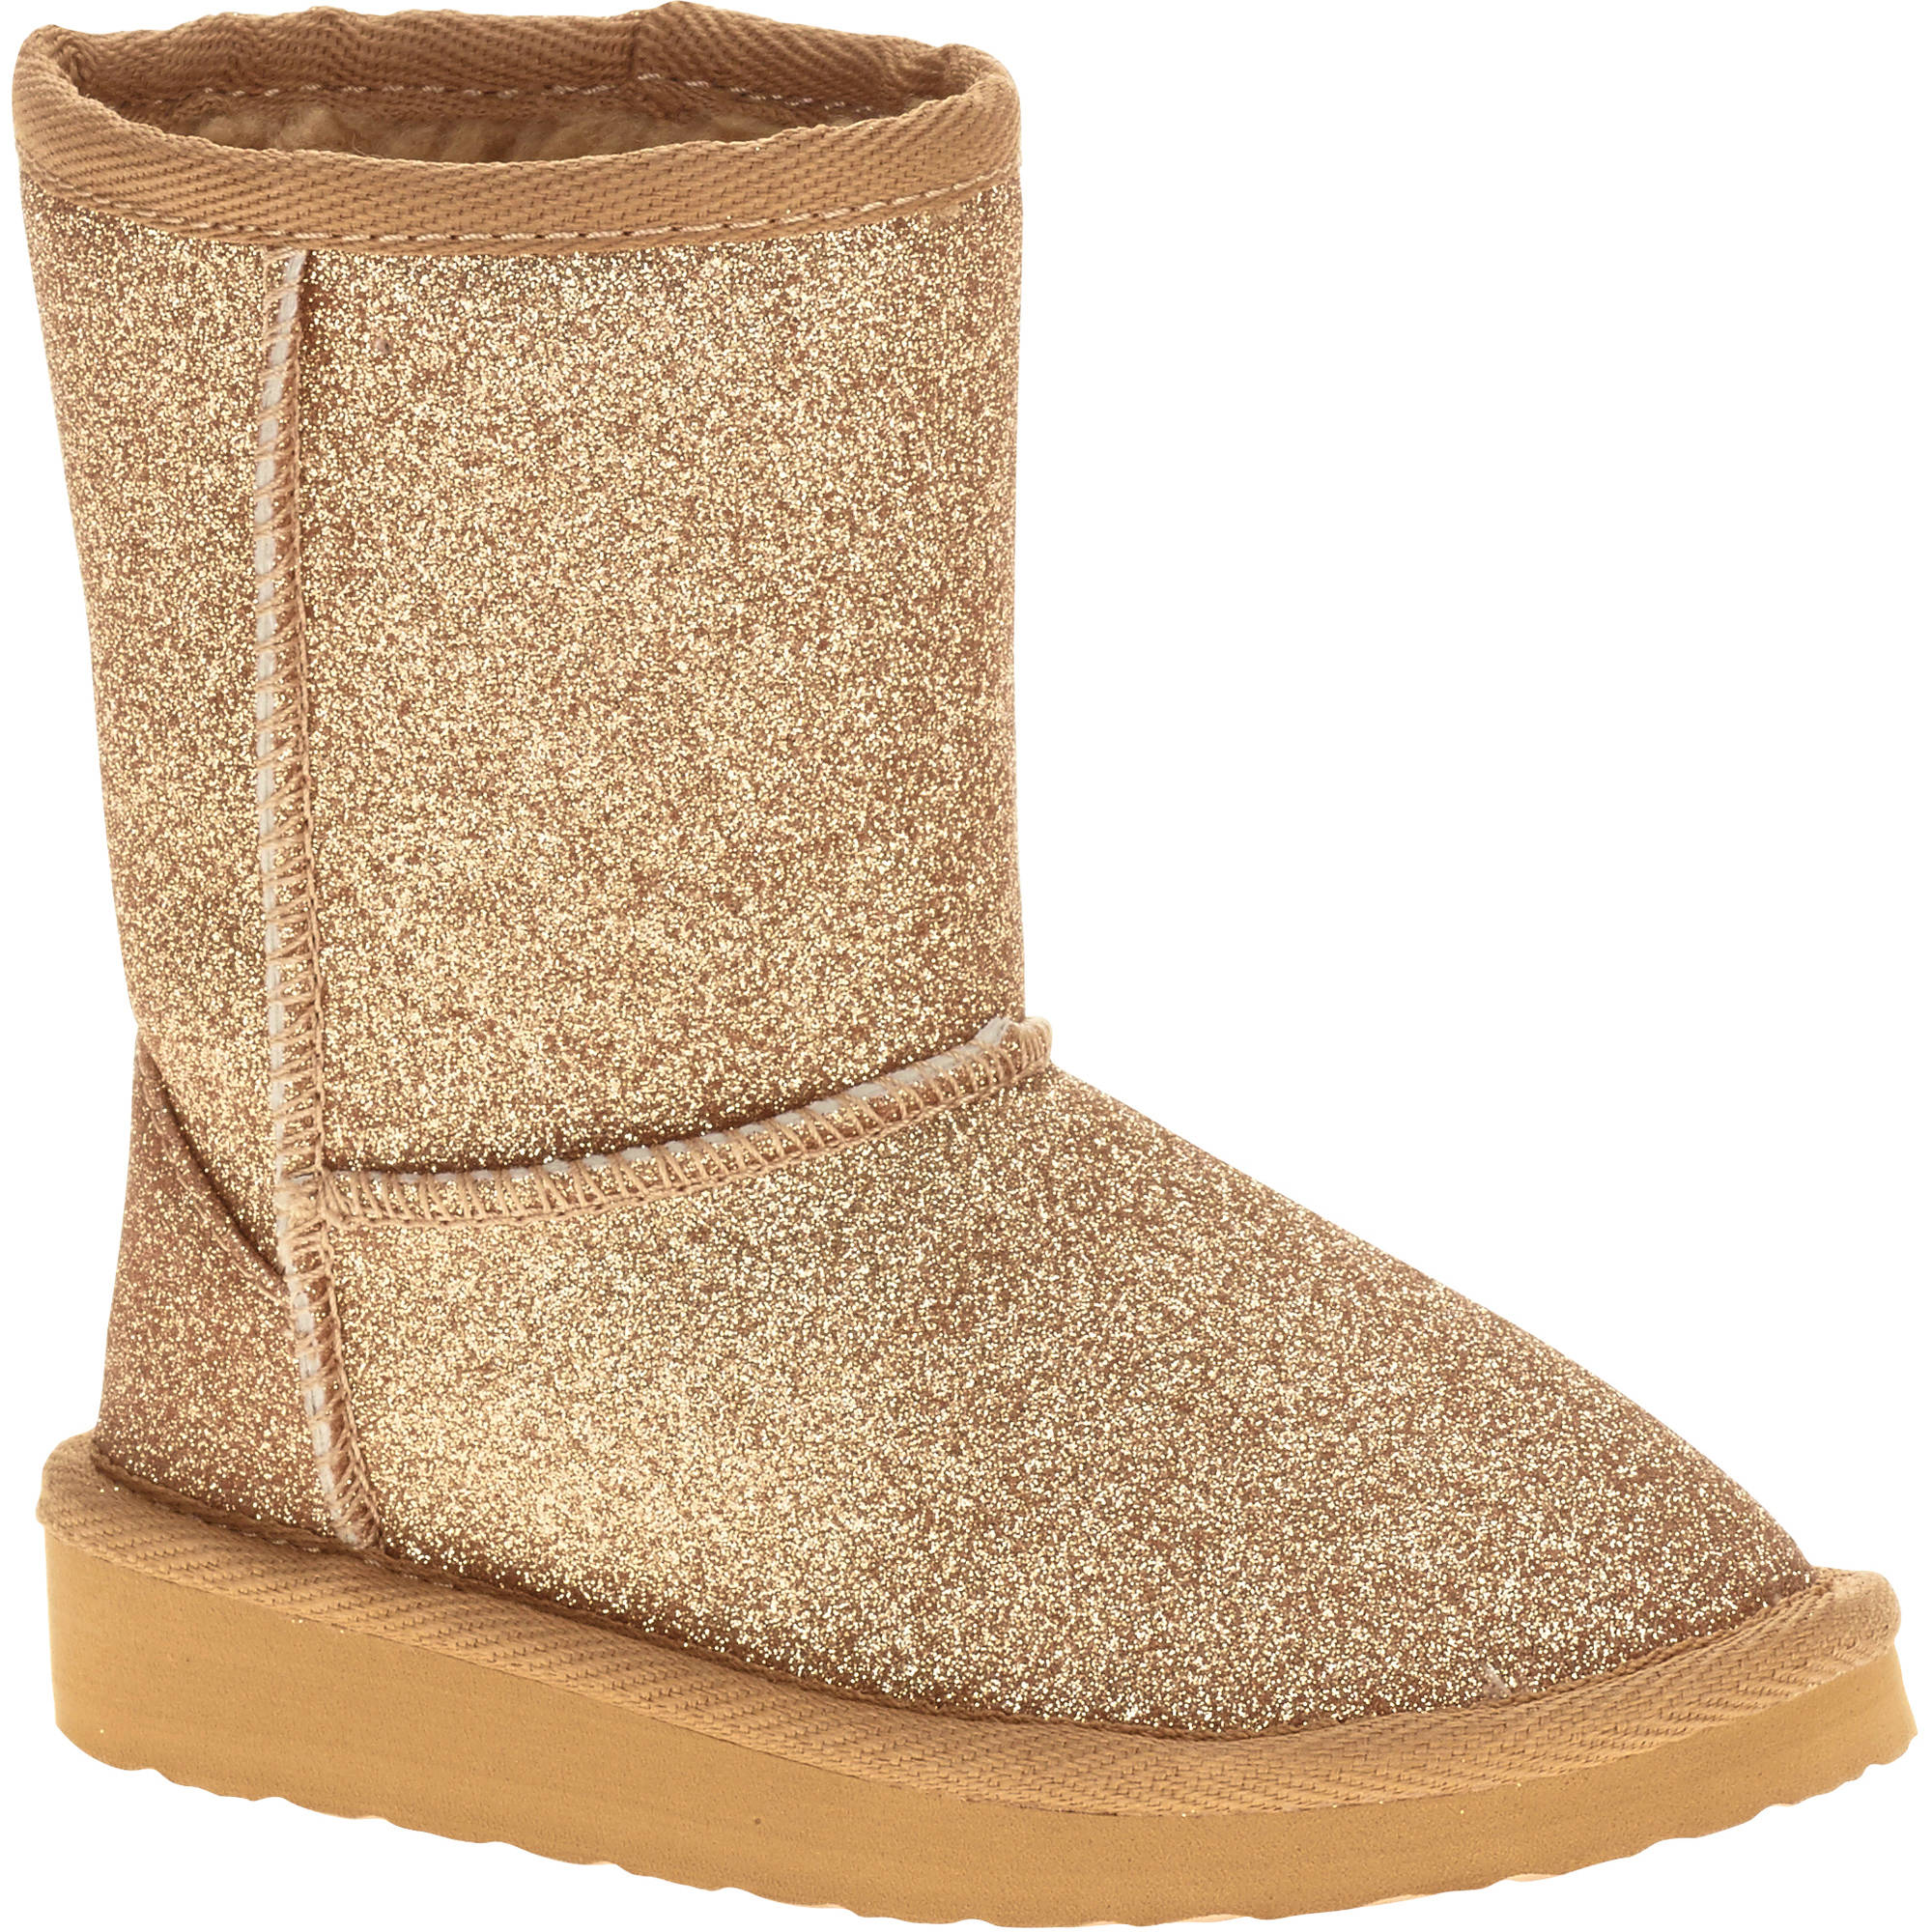 Garanimals Toddler Girl's Sparkle Lug Boot - Walmart.com